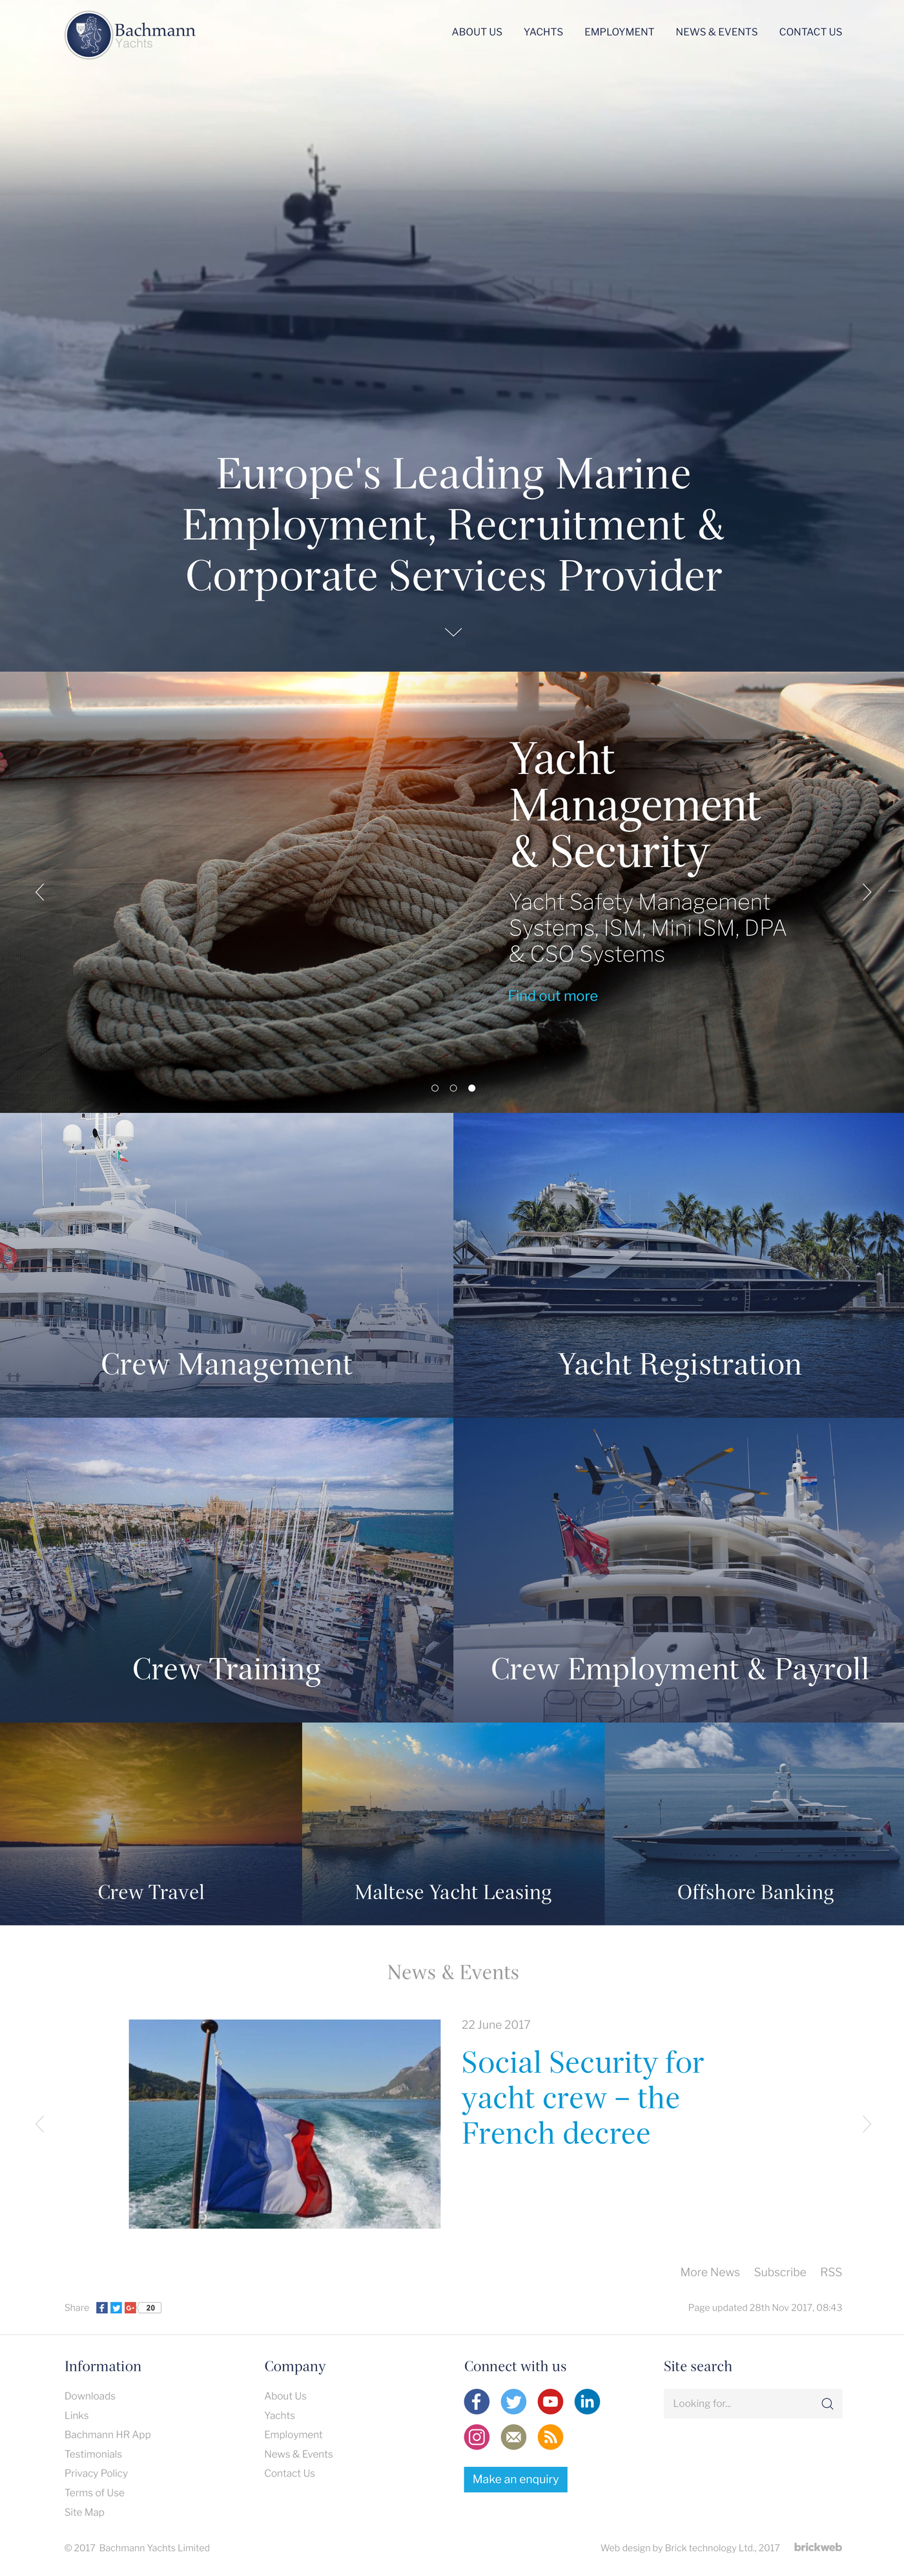 Bachmann Yachts Home page